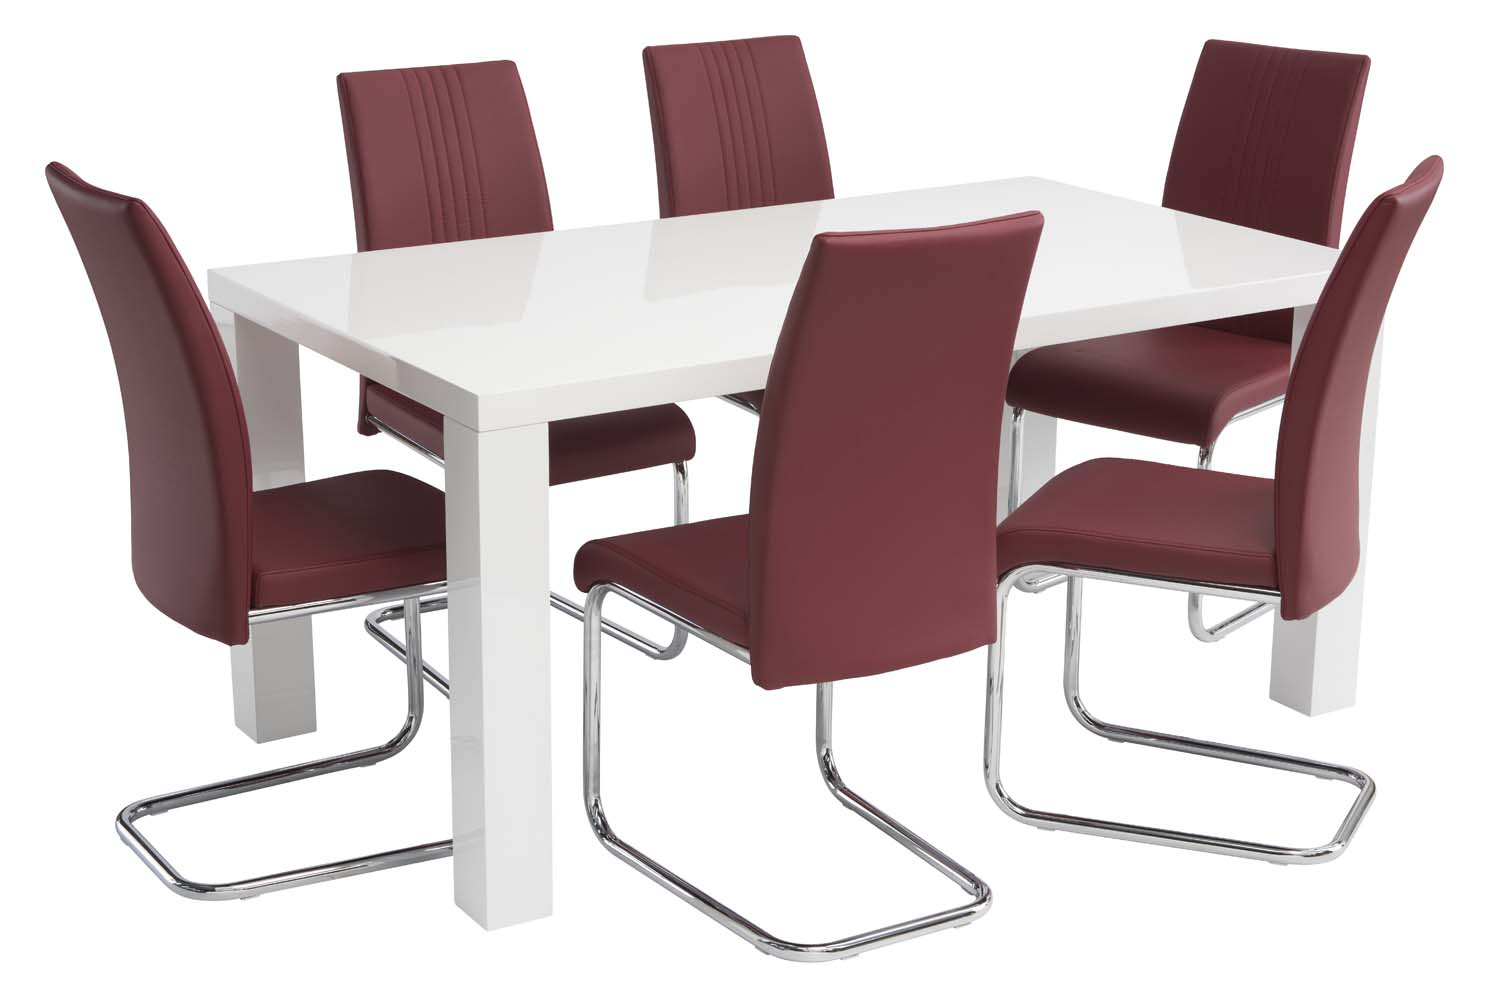 https://www.firstfurniture.co.uk/pub/media/catalog/product/m/o/mon01_mon01red.jpg